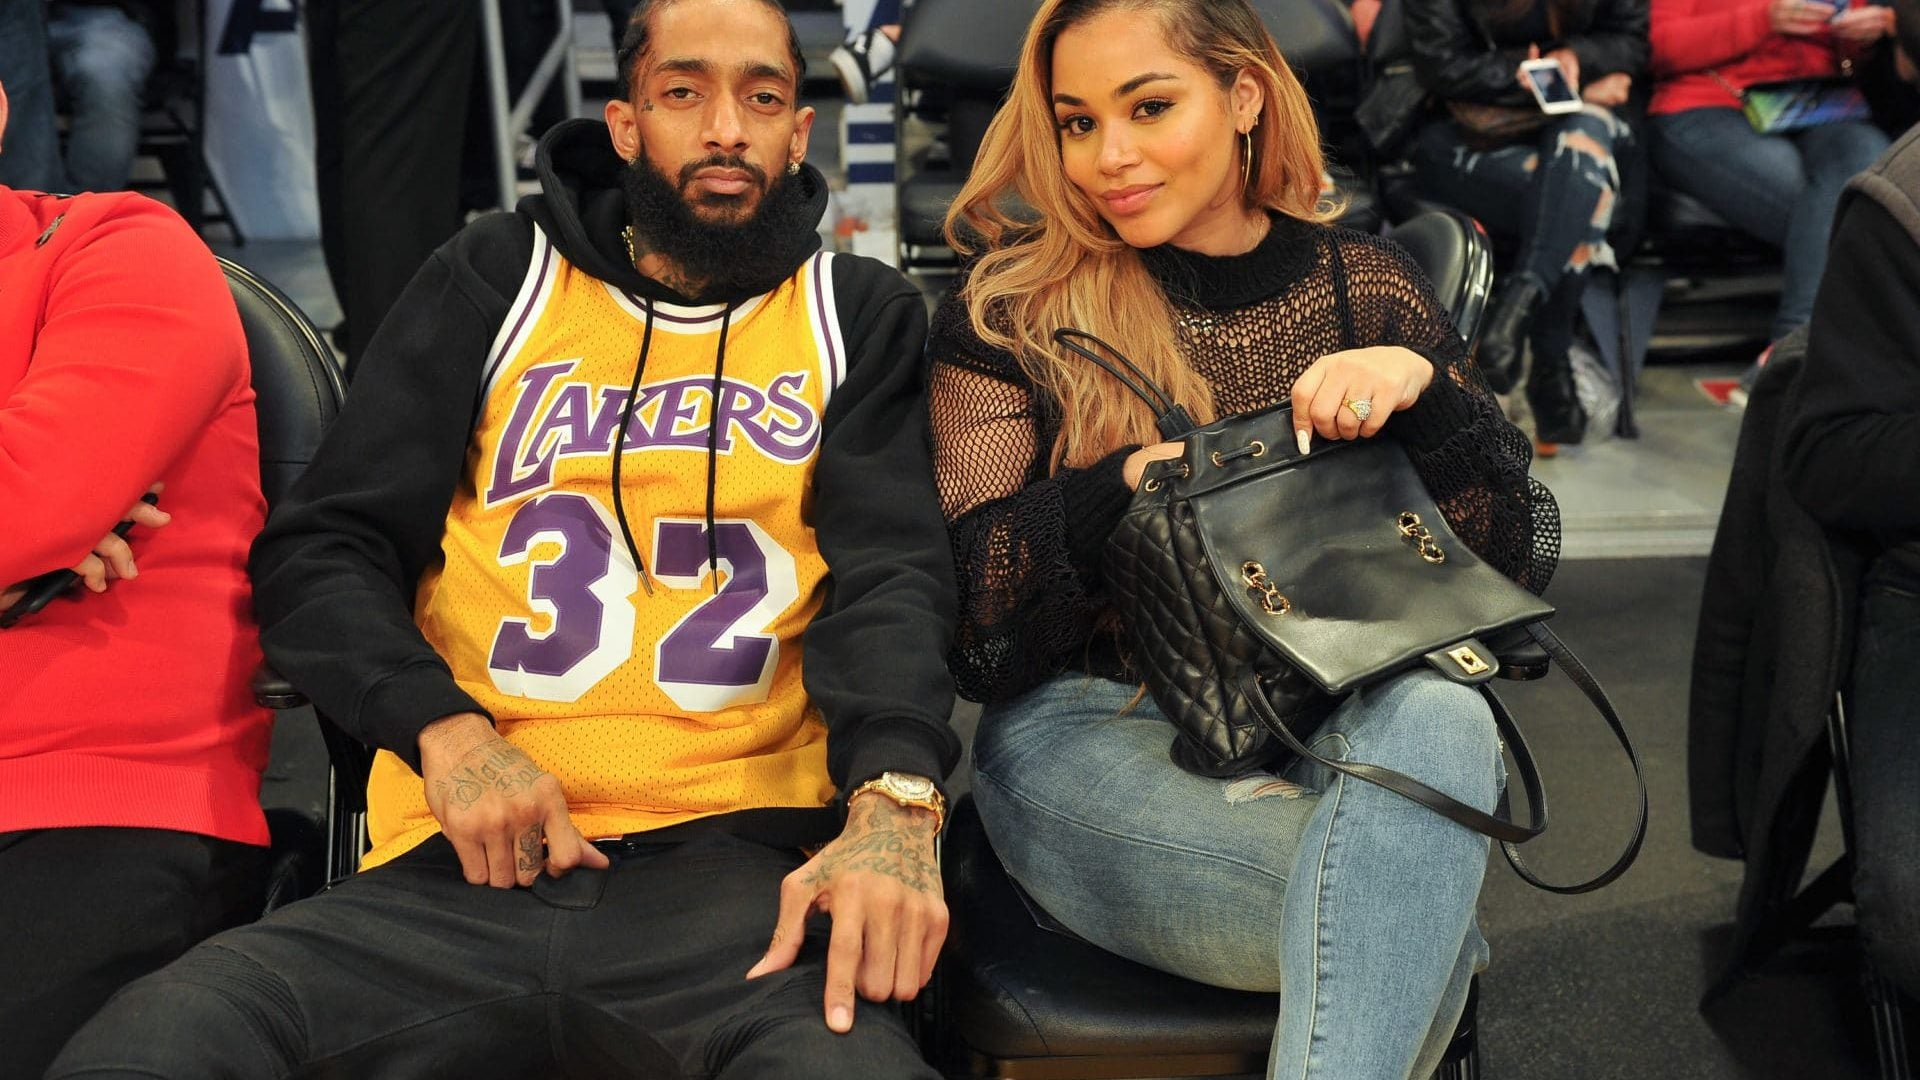 Lauren London Speaks On Nipsey Hussle's Death: 'I'm Lost Without You'